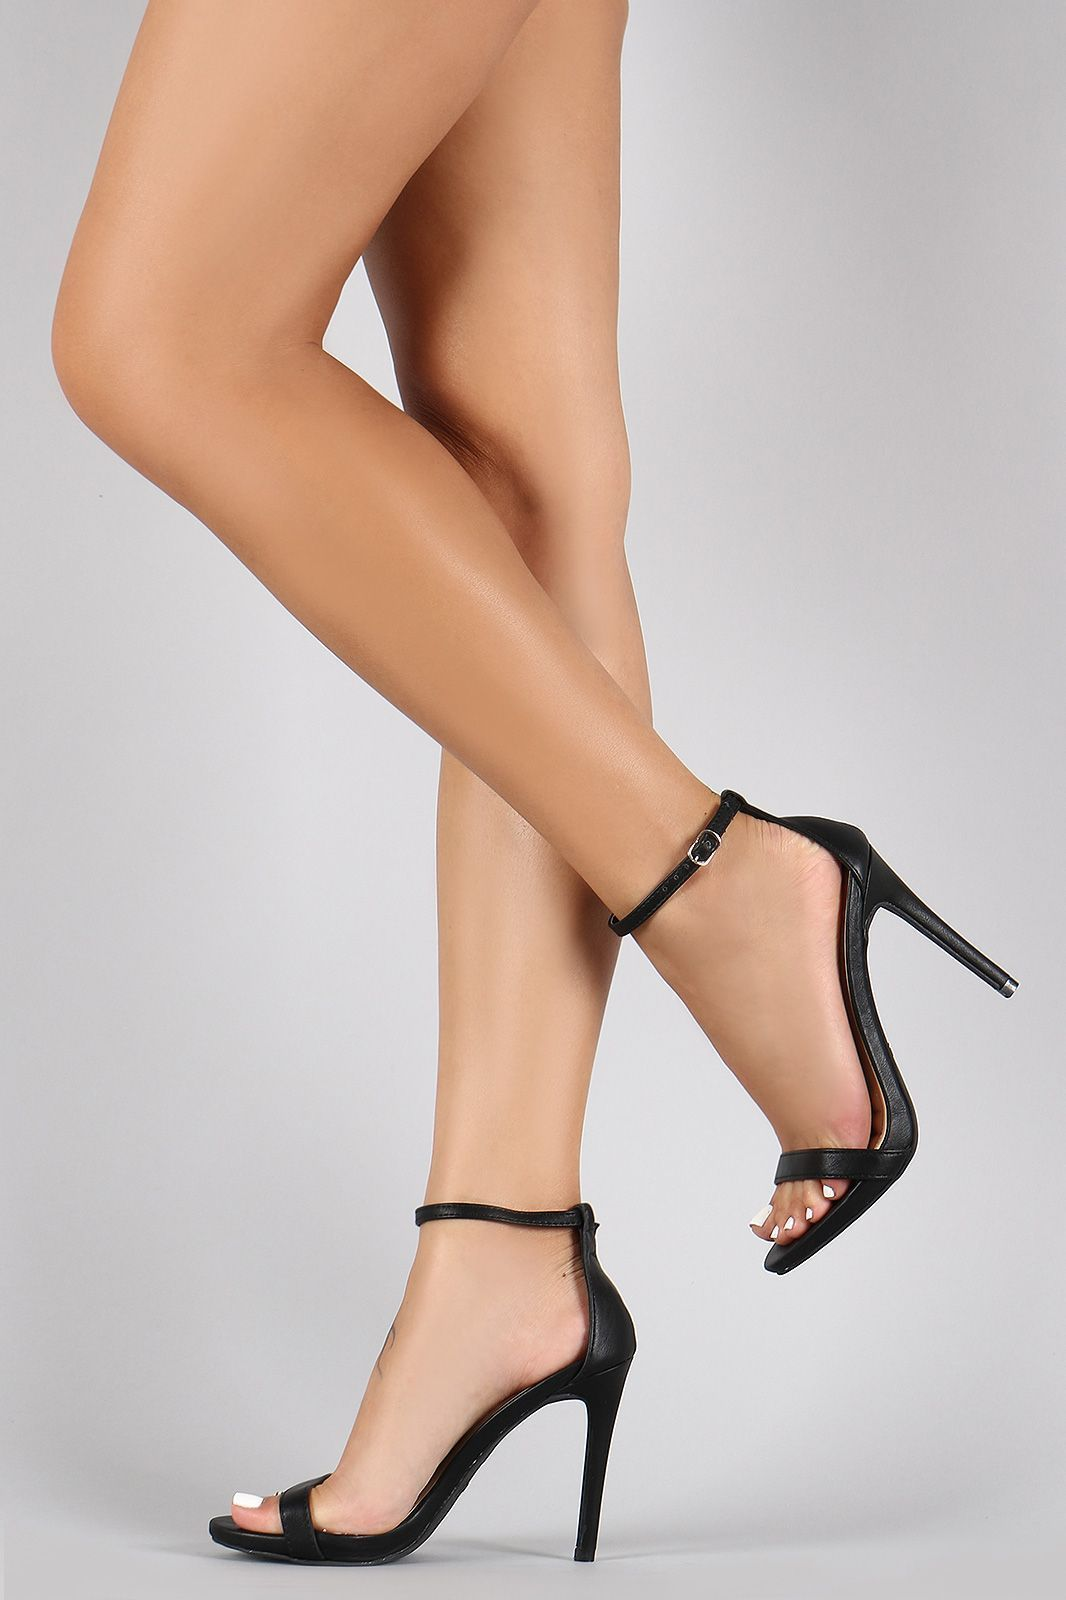 0811397bfff4 Anne Michelle Ankle Strap Open Toe Stiletto Heel